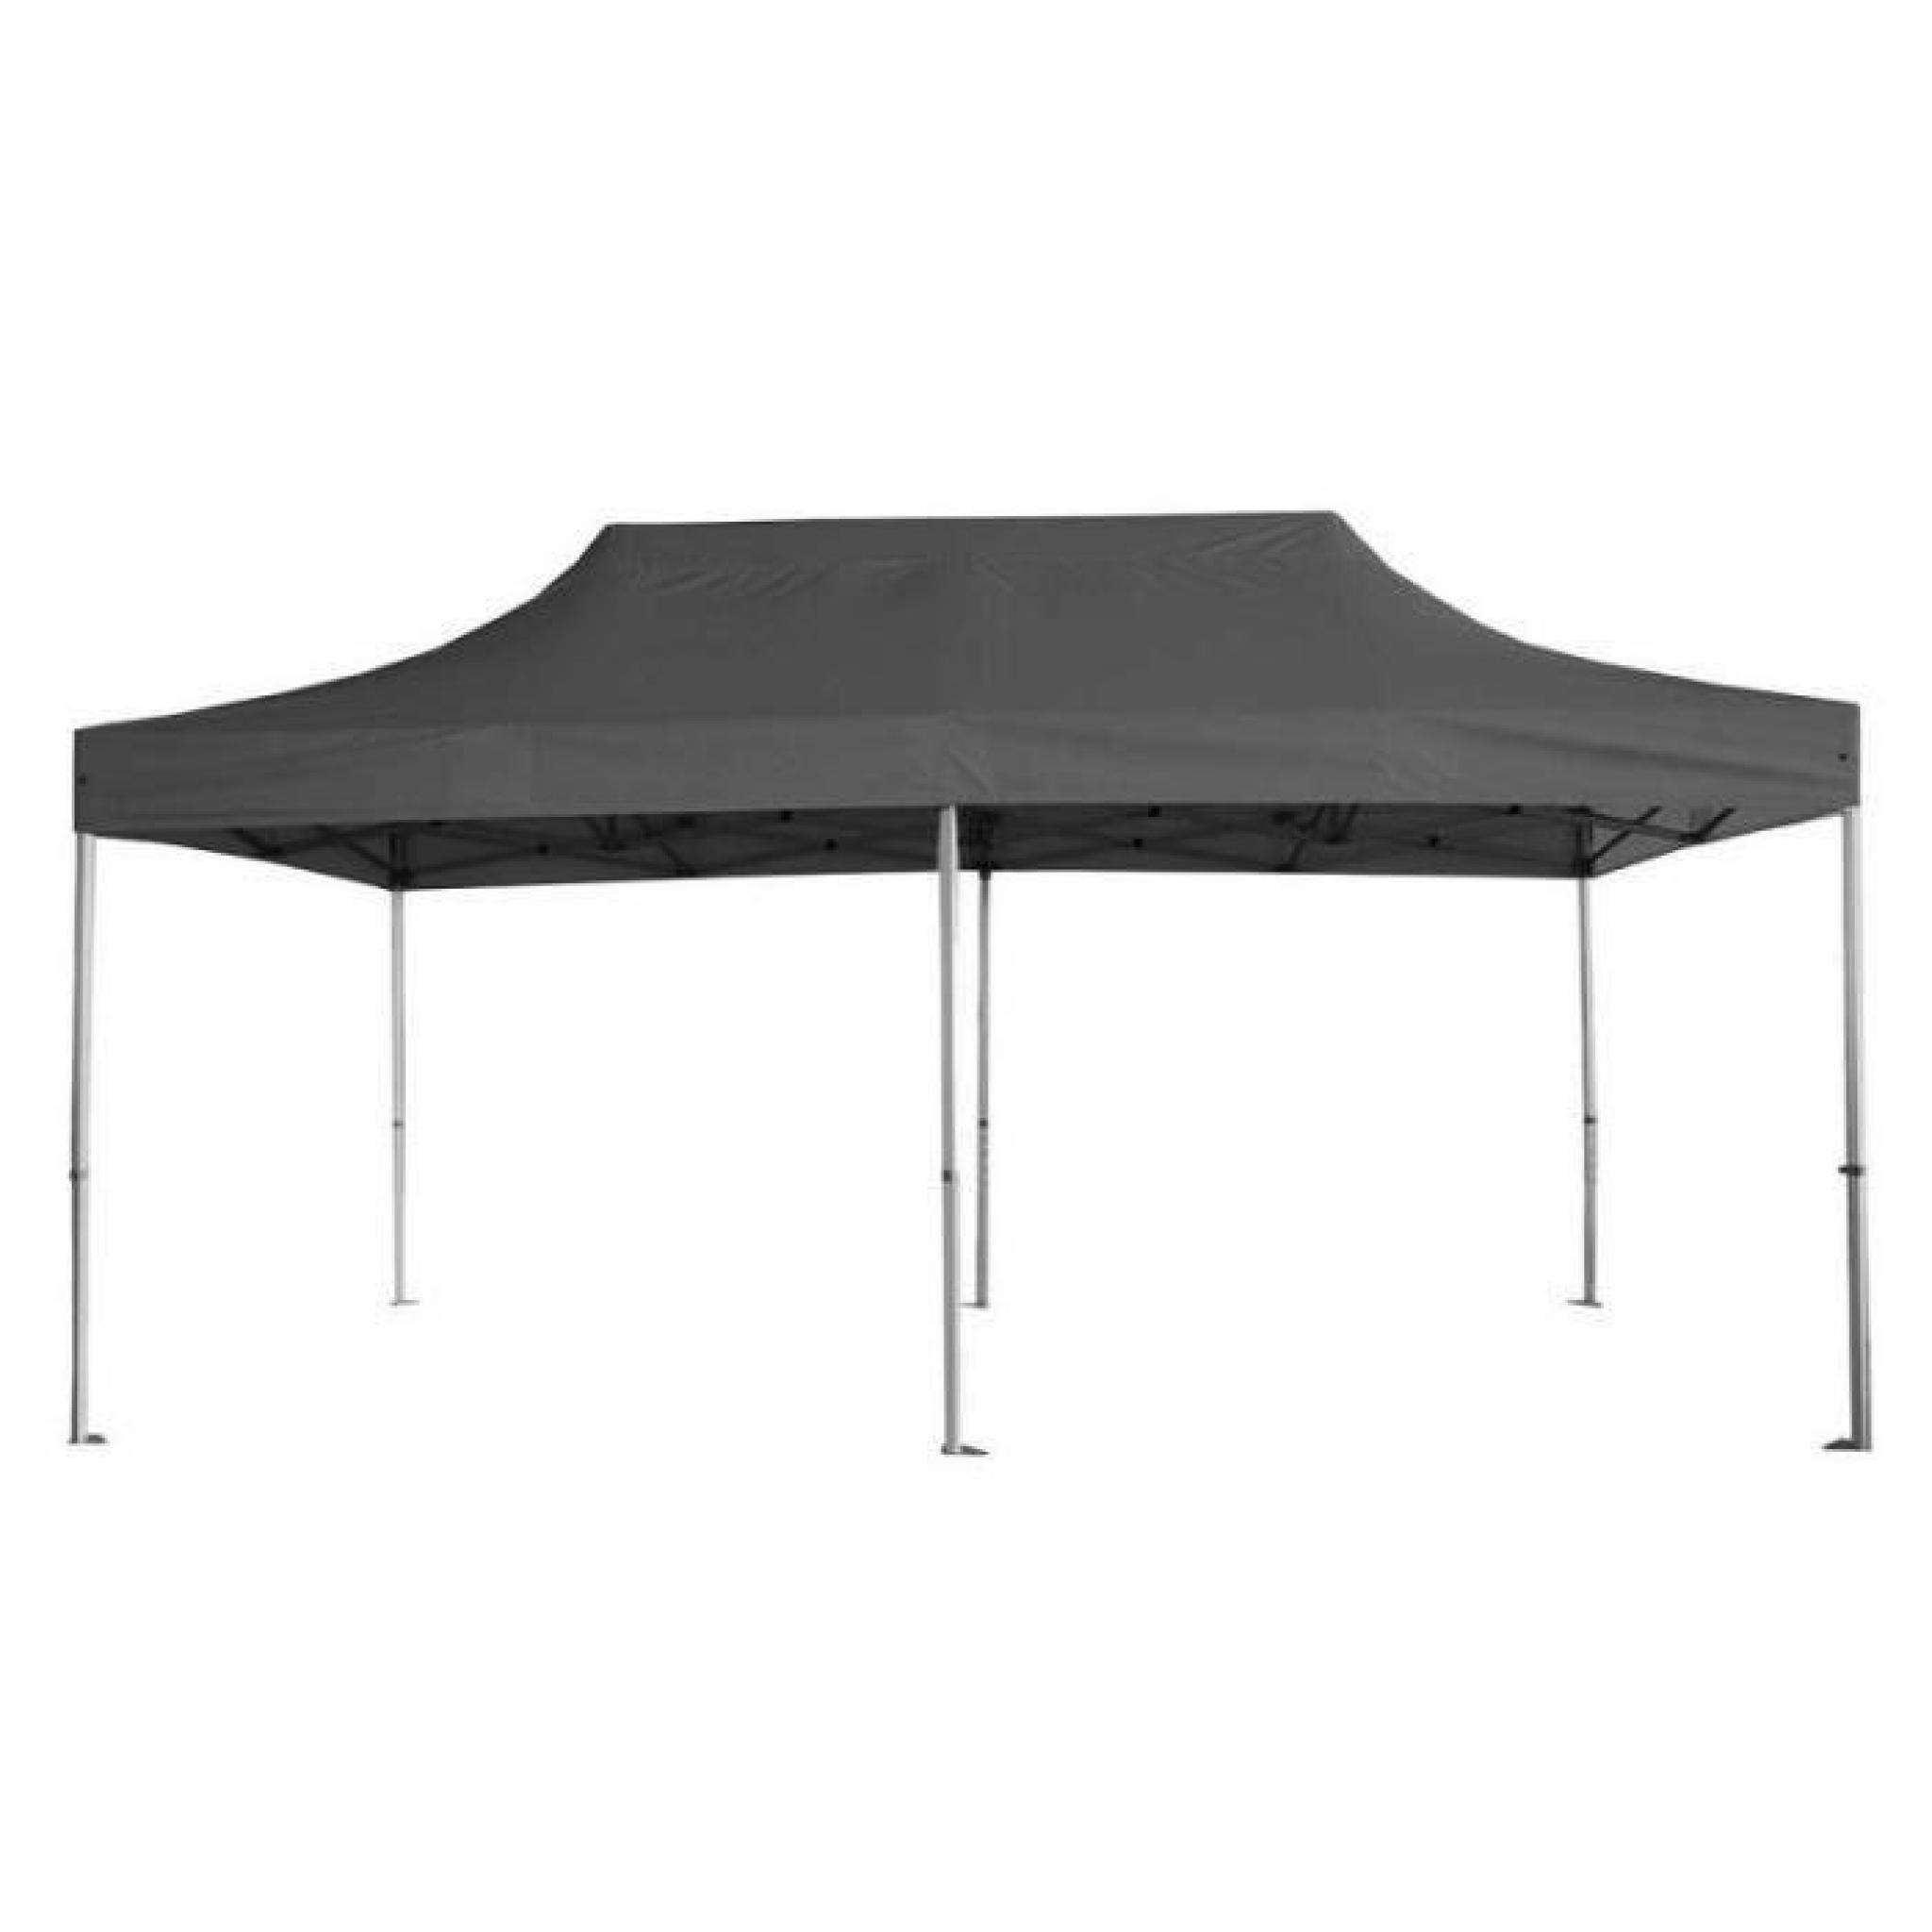 tente pliante barnum 3x6 m pro grise achat vente pergola en aluminium pas cher. Black Bedroom Furniture Sets. Home Design Ideas